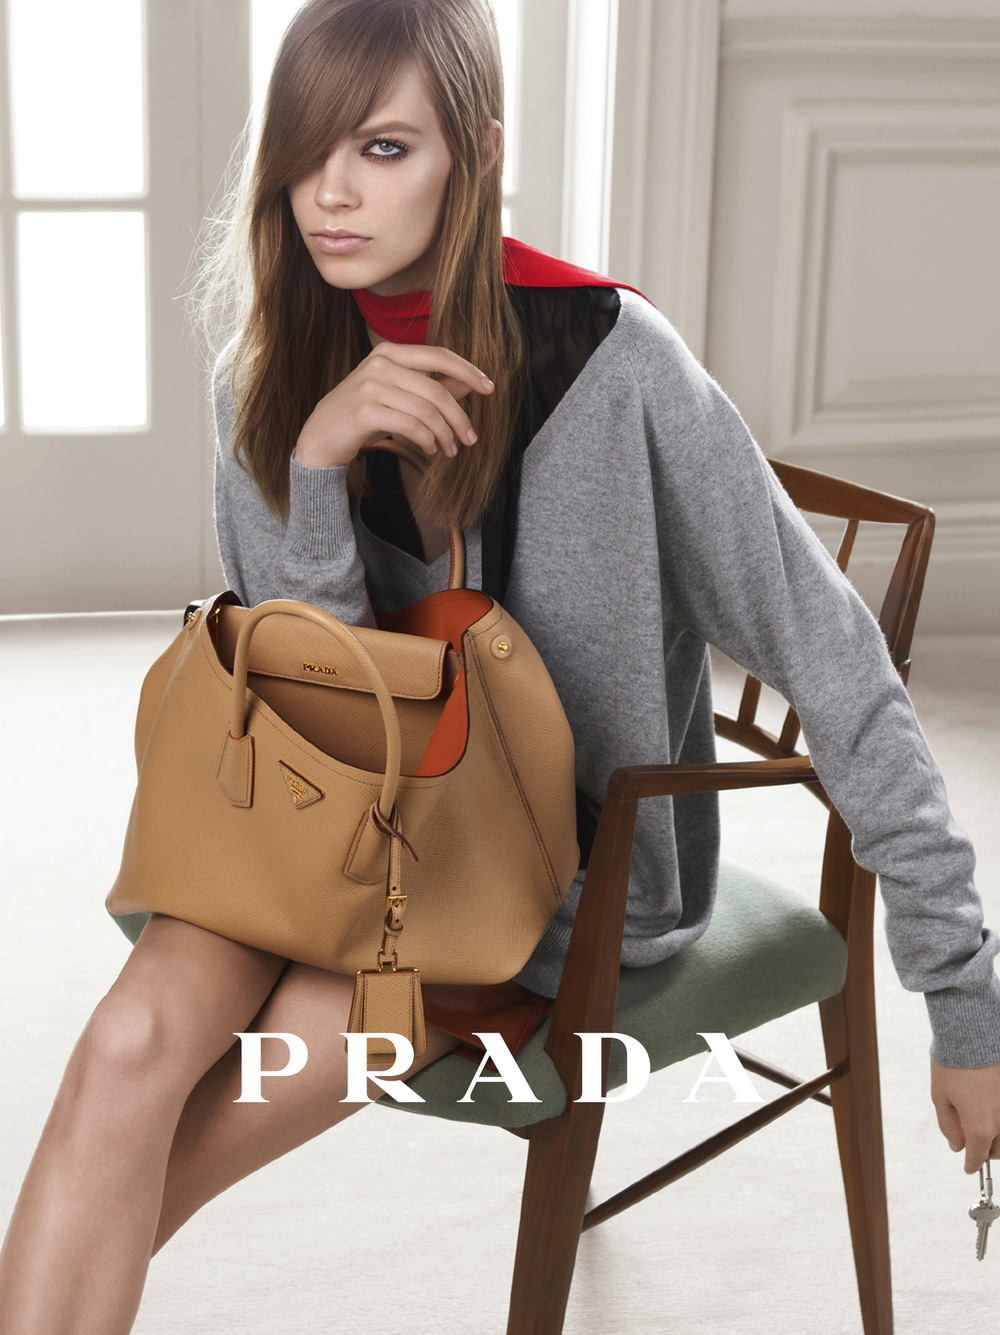 Prada 2014 April Adv Camp_01 (1).jpg